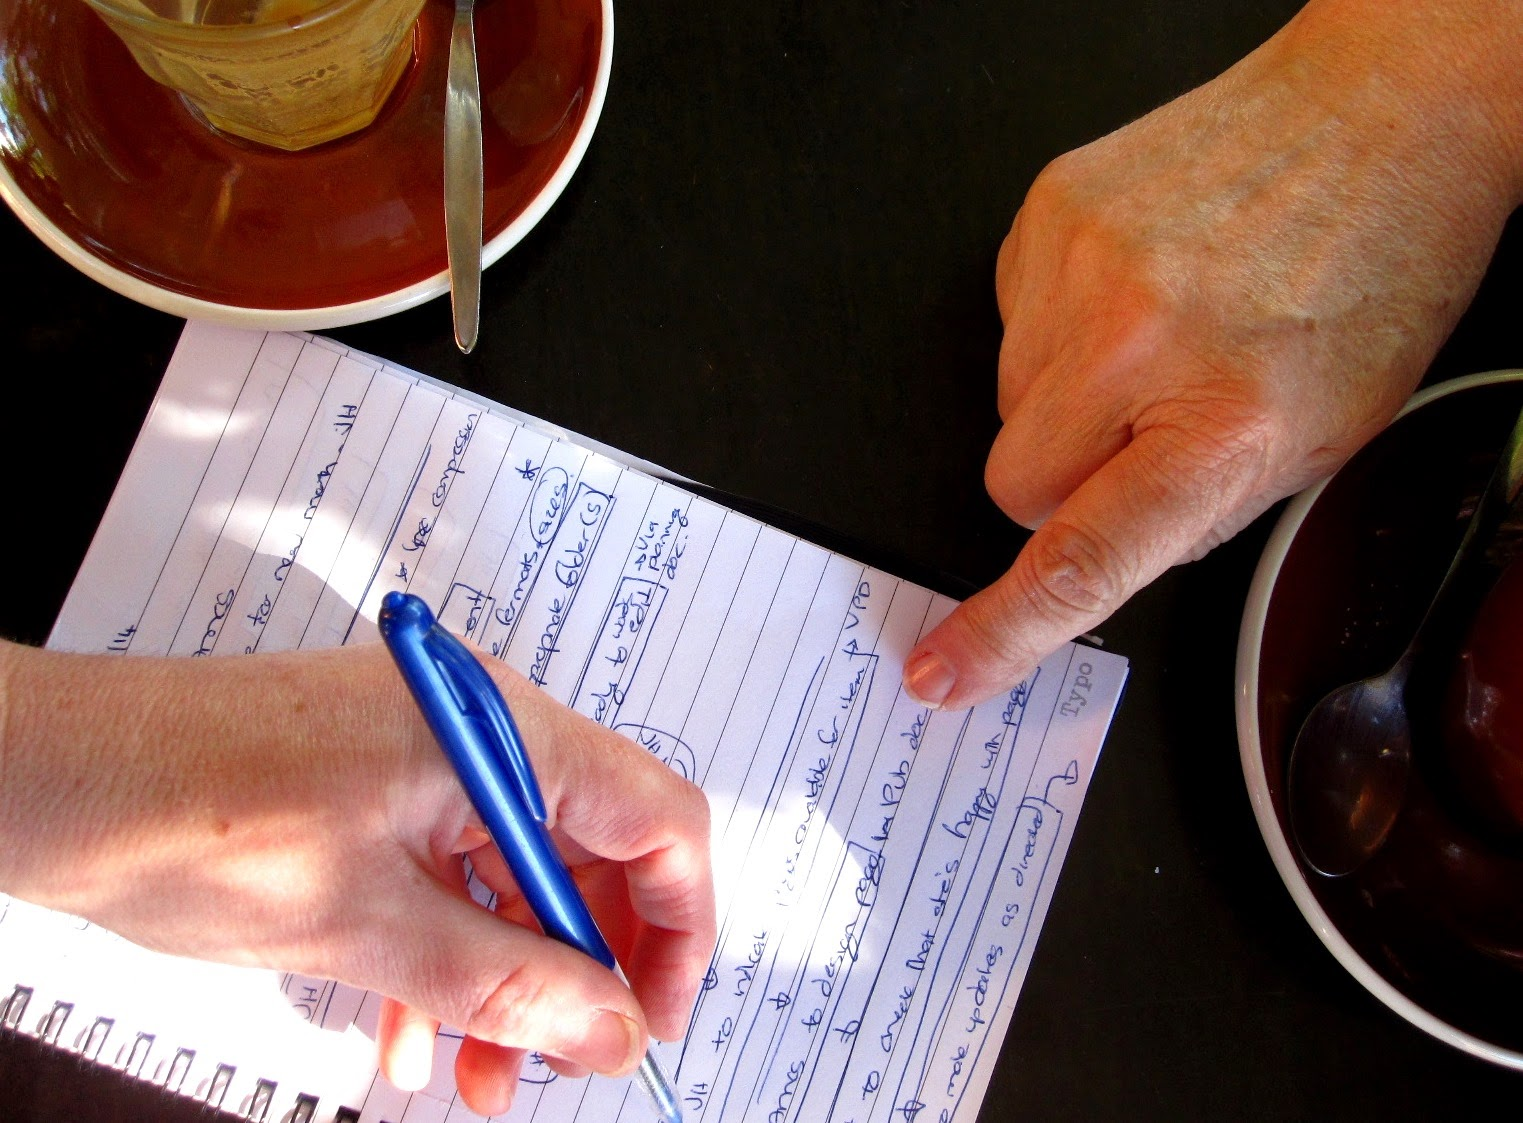 Aerial view of a cafe table, showing two empty coffee cups, a notebook page of notes, with one person pointing to it and the other making notations.